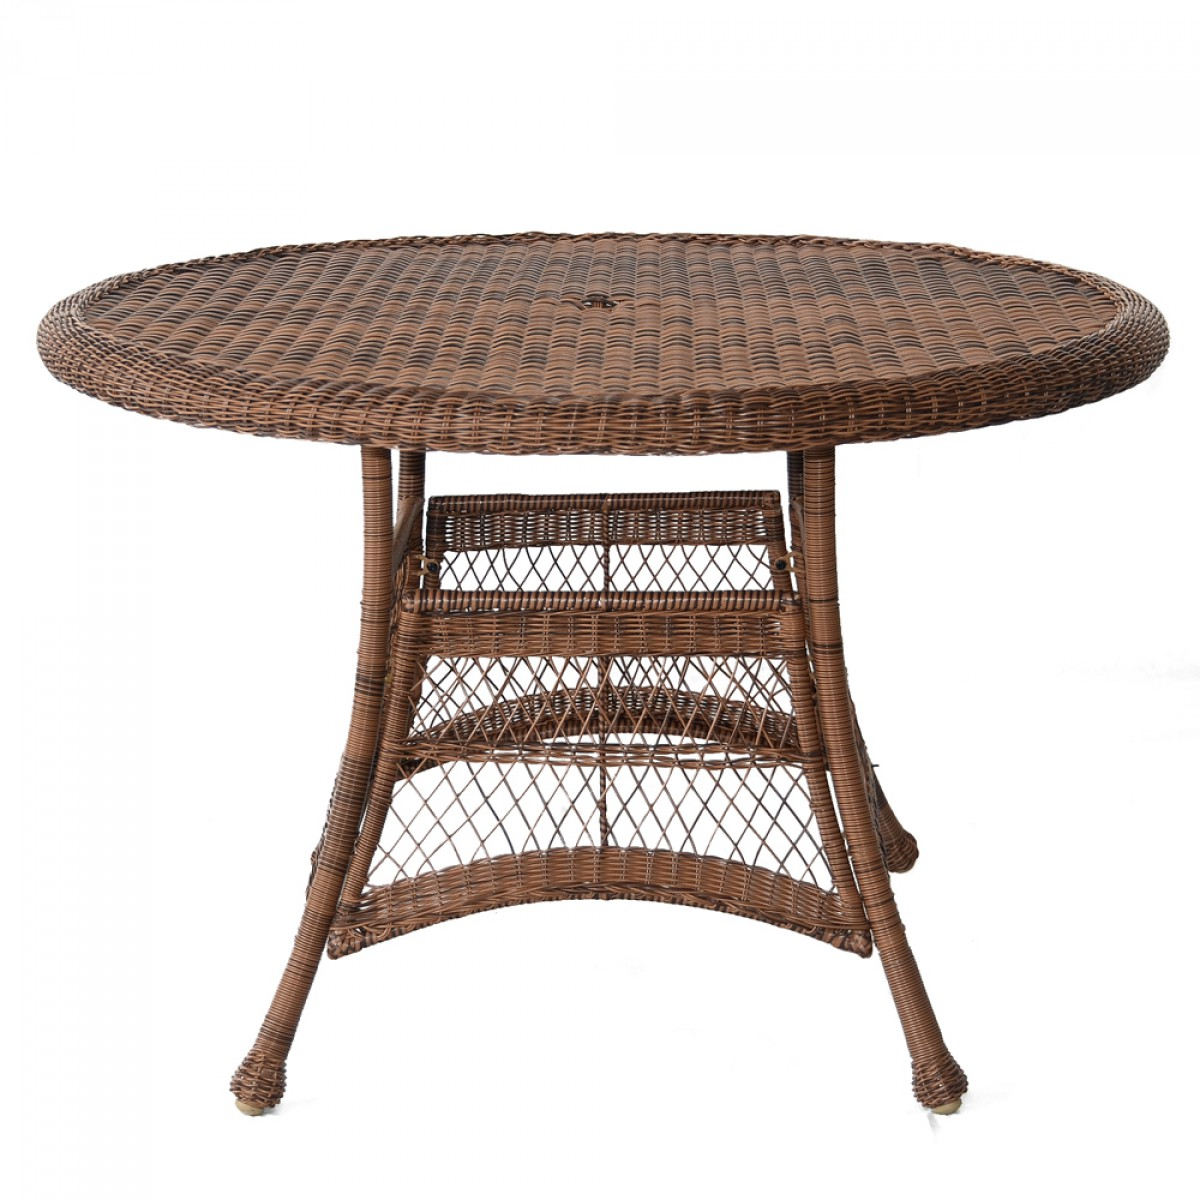 Honey wicker 44 round dining table for 44 inch round dining table